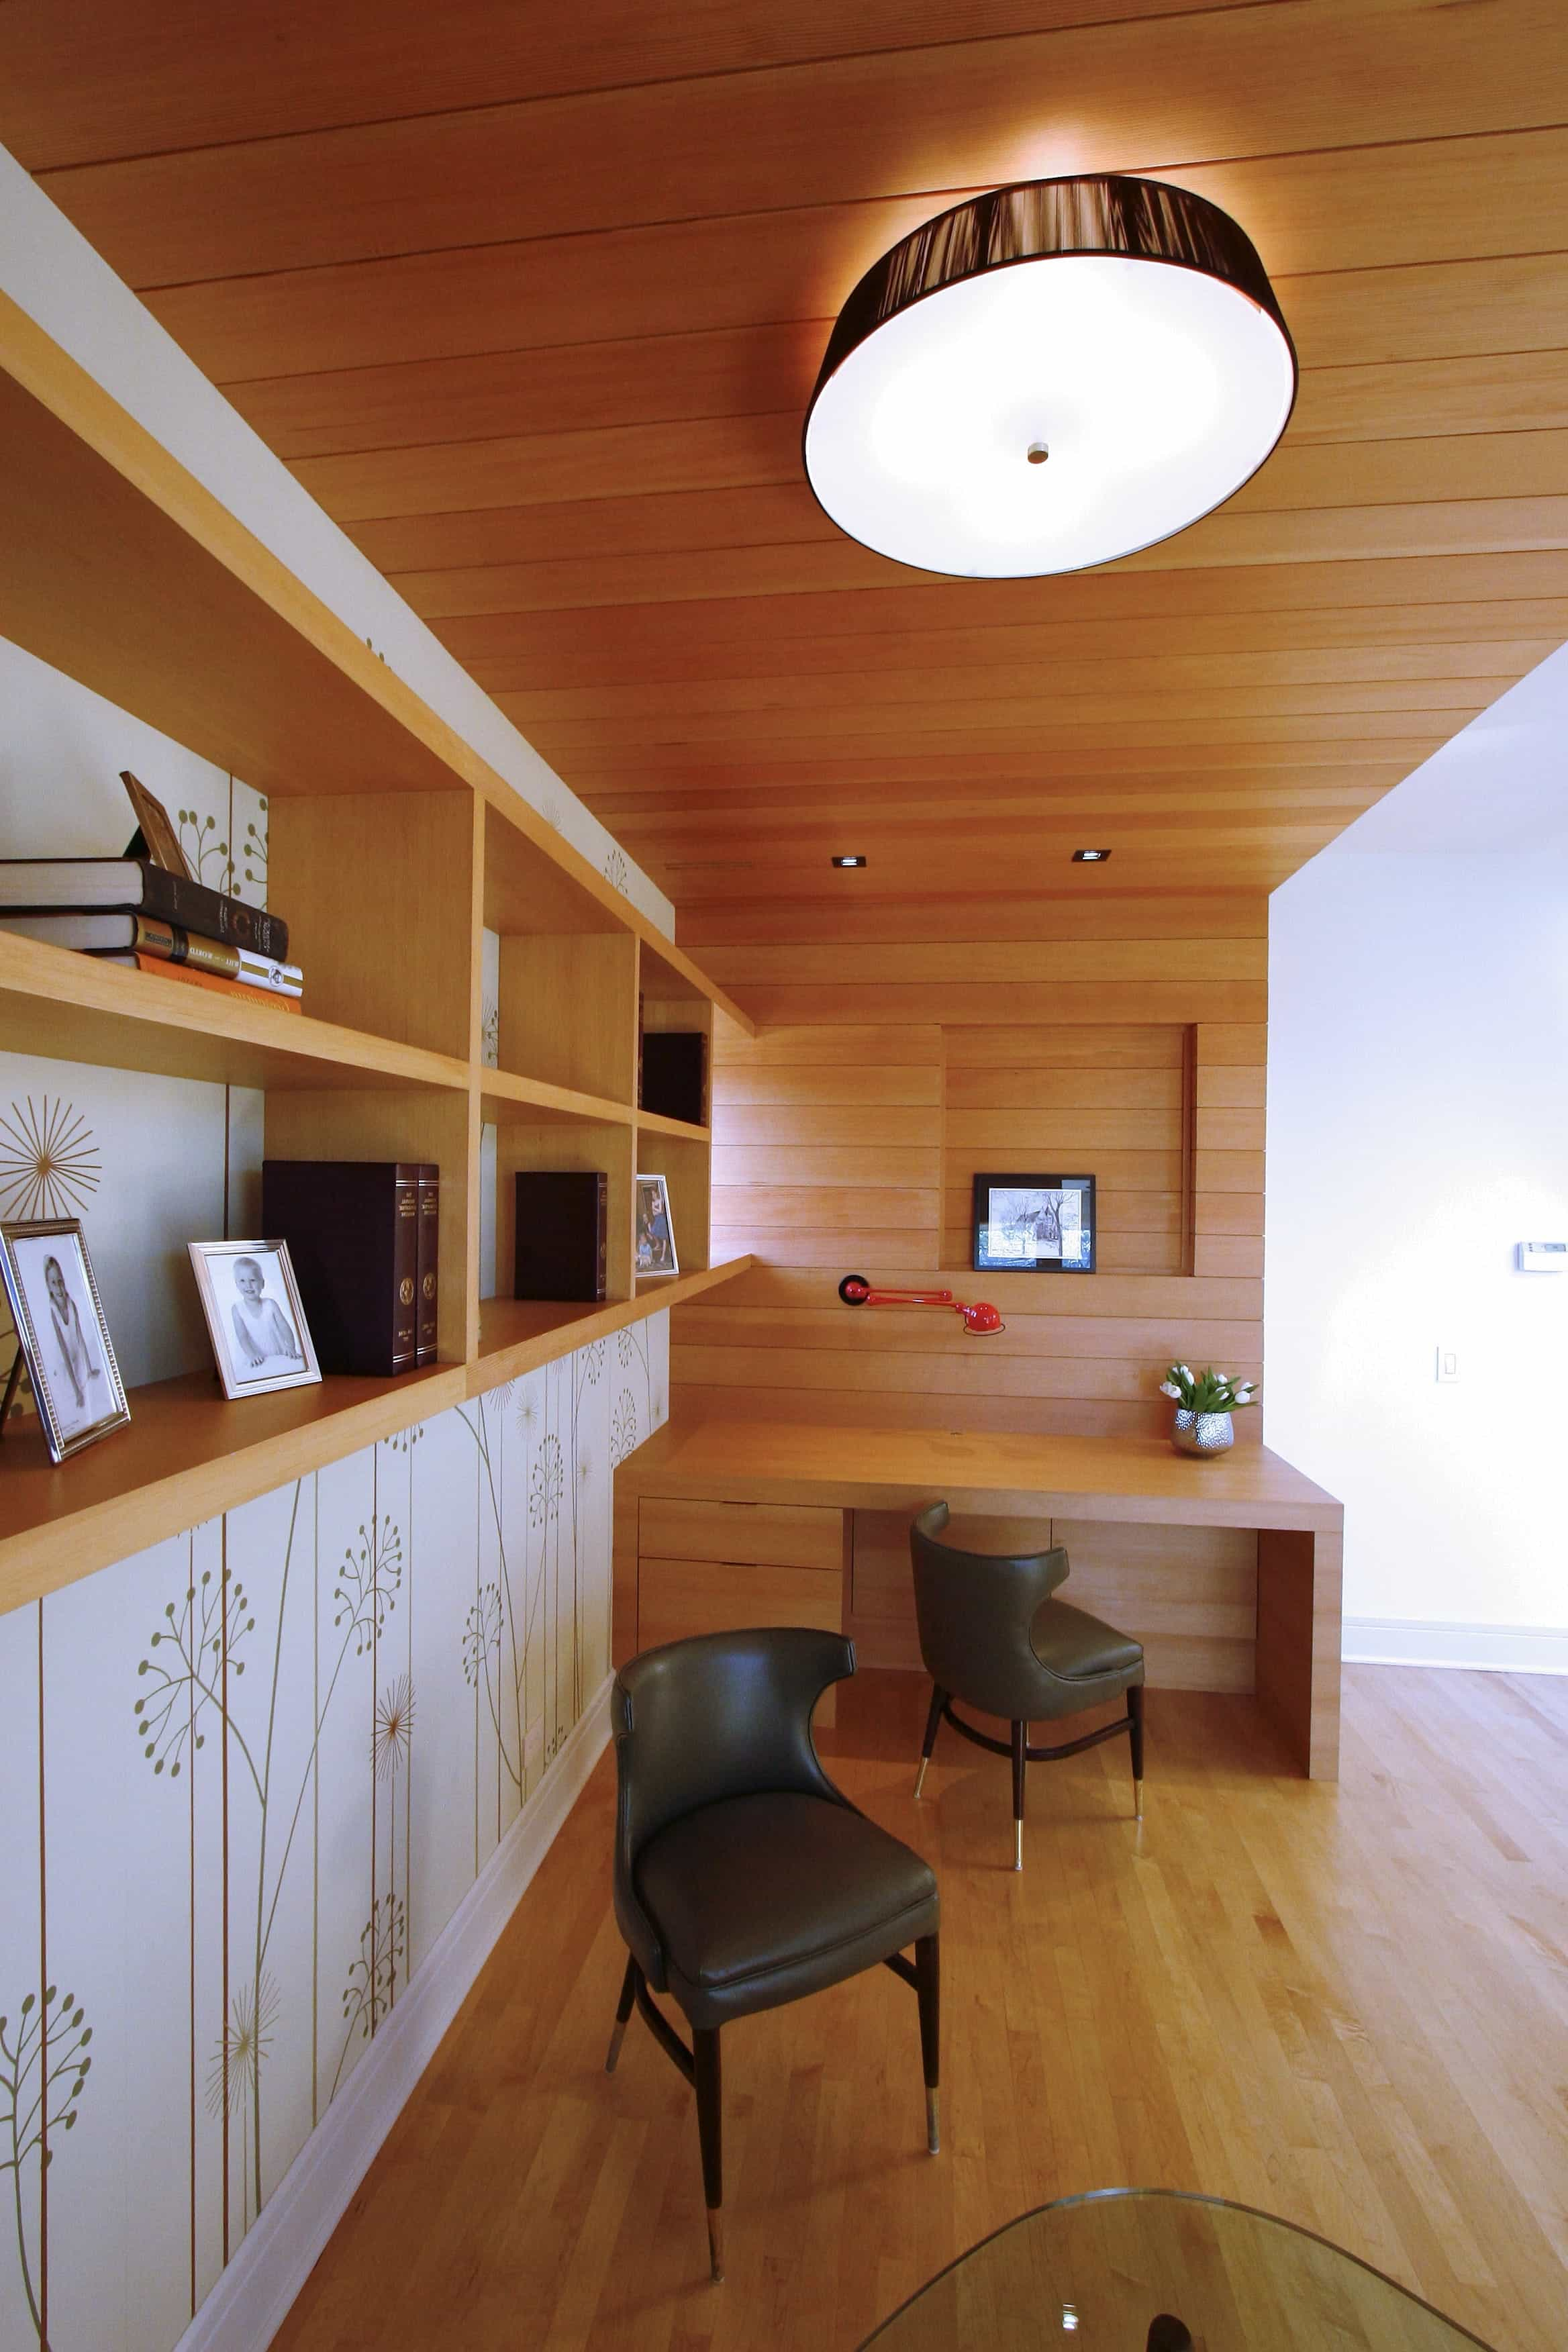 Contemporary Home Office With Built In Flat Panel Desk And Wood Ceiling (View 2 of 10)